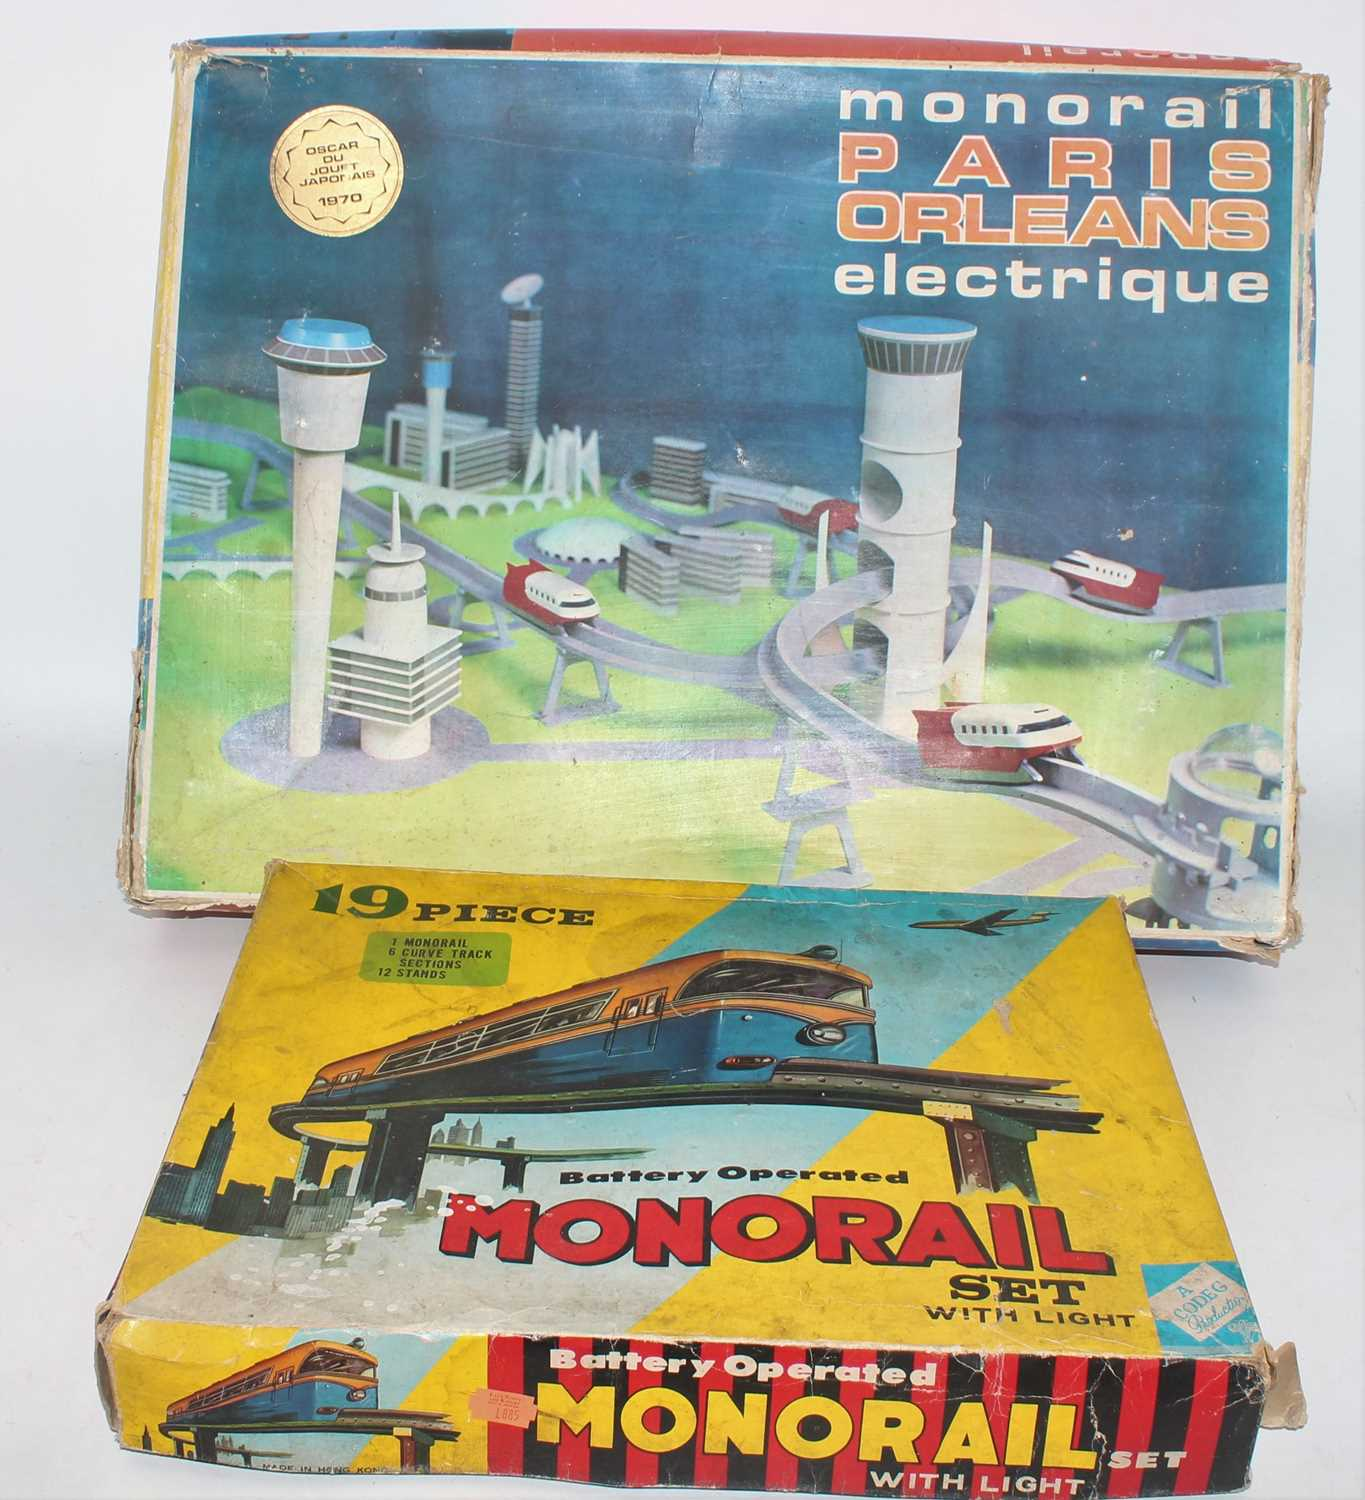 Codeg Boxed Battery operated Monorail set, housed in the original box together with 1970s Paris- - Image 2 of 2